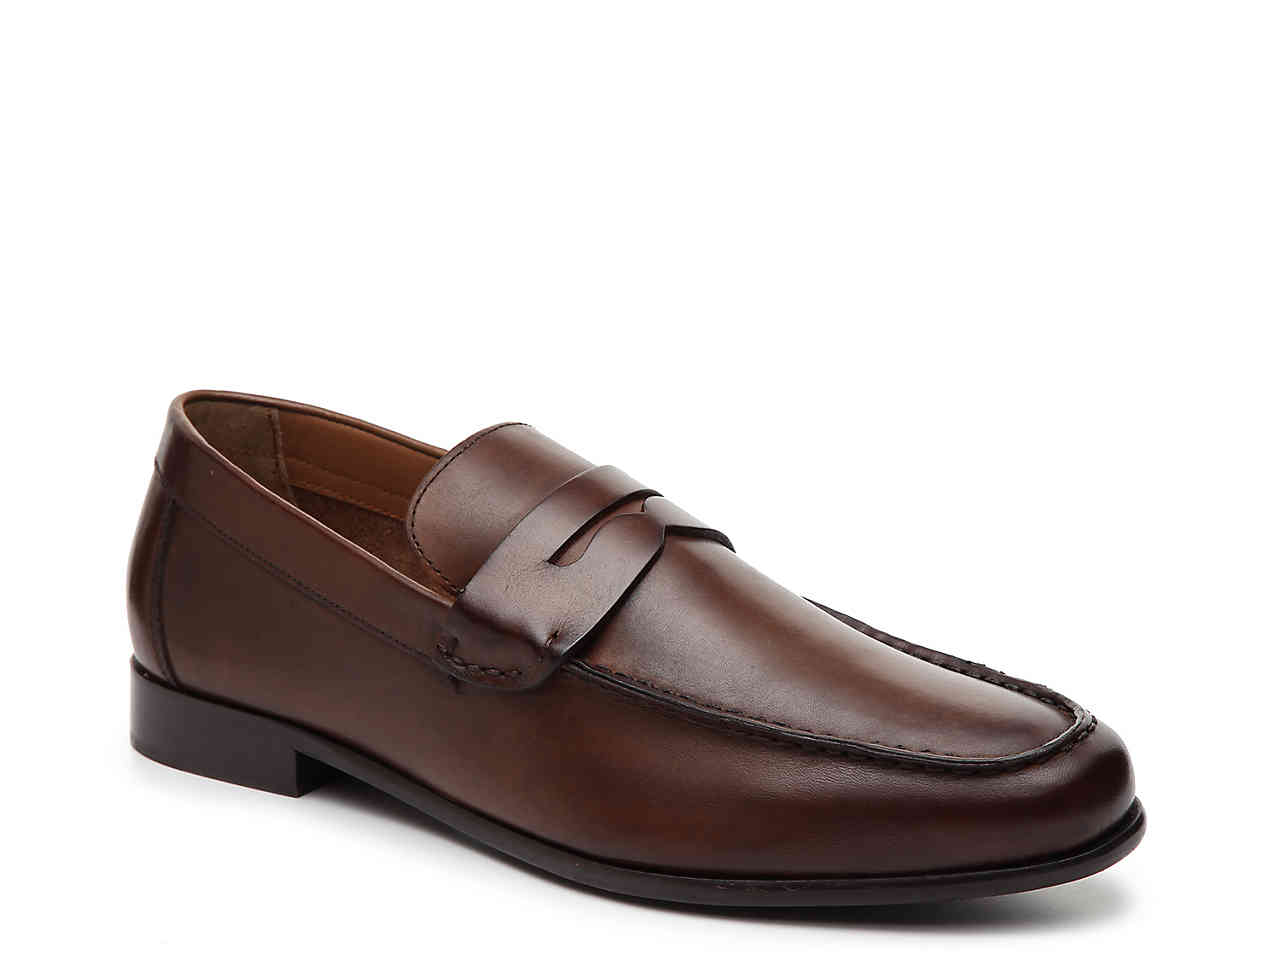 Bacco Bucci Bachelor Penny Loafer in Brown - Rainwater's Men's Clothing and Tuxedo Rental